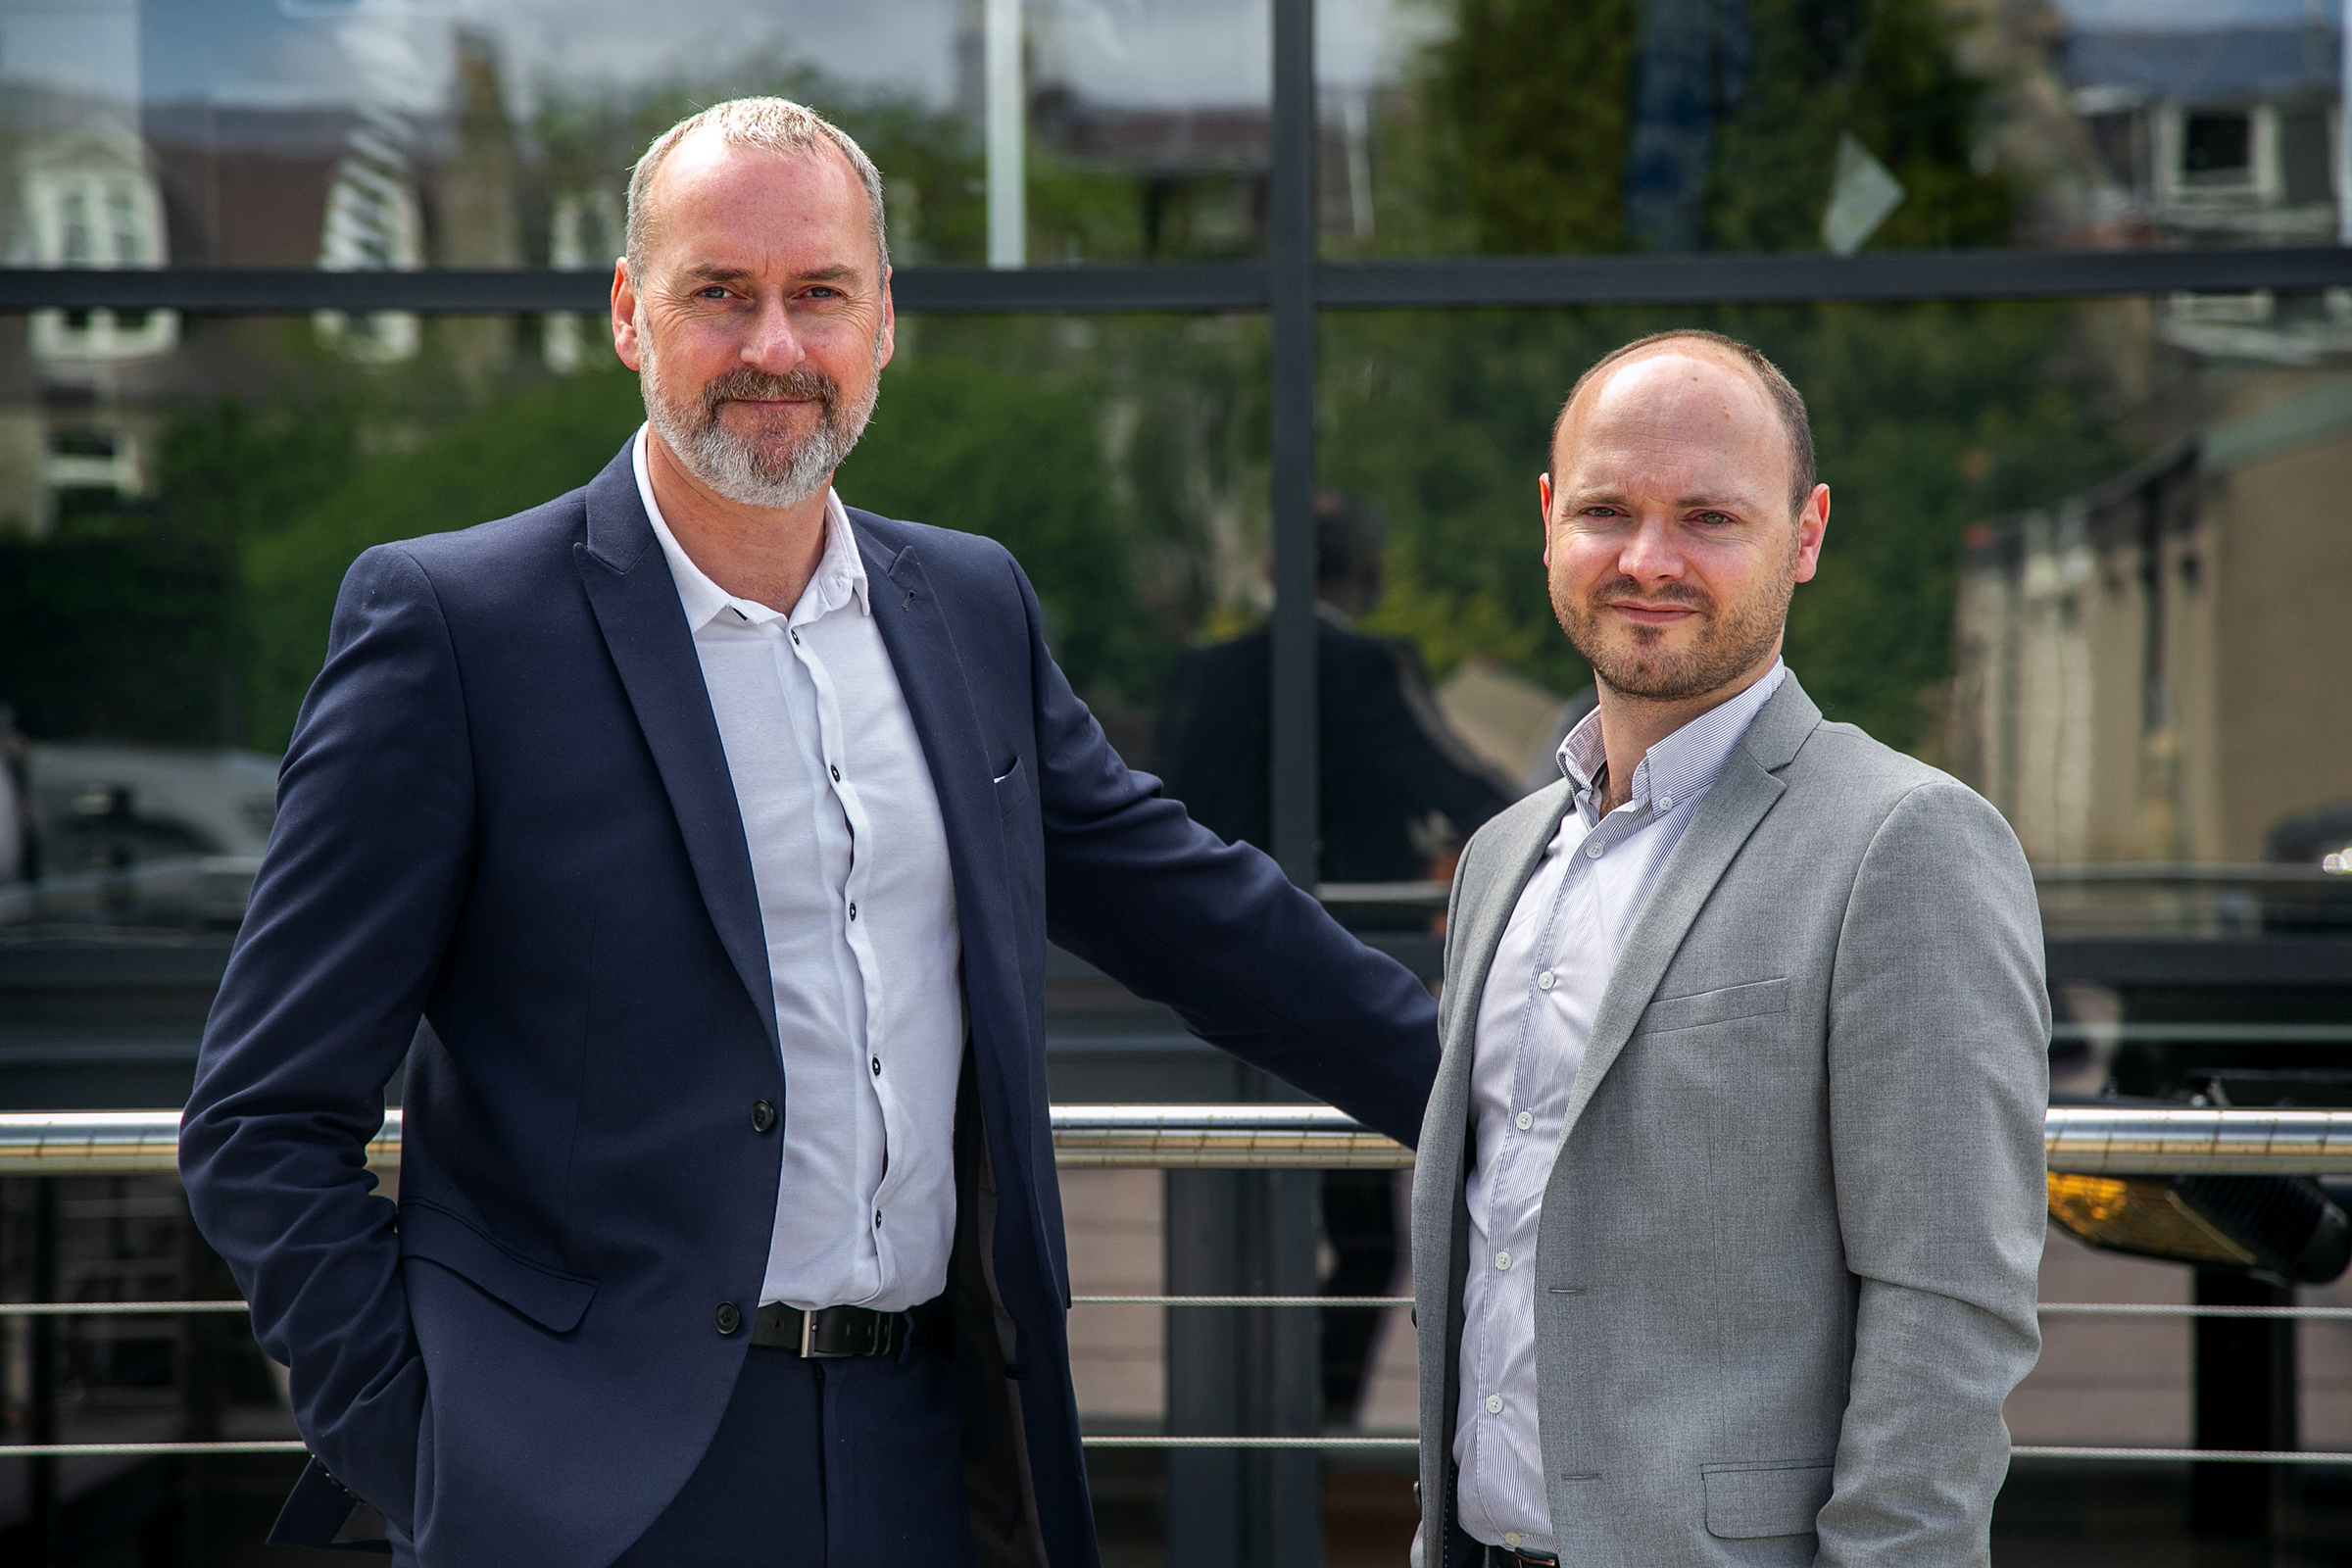 Managing director Graeme McGuire (left) and business development manager DJ Robertson of AV One Solutions at the Oil & Gas Technology Centre, Aberdeen.